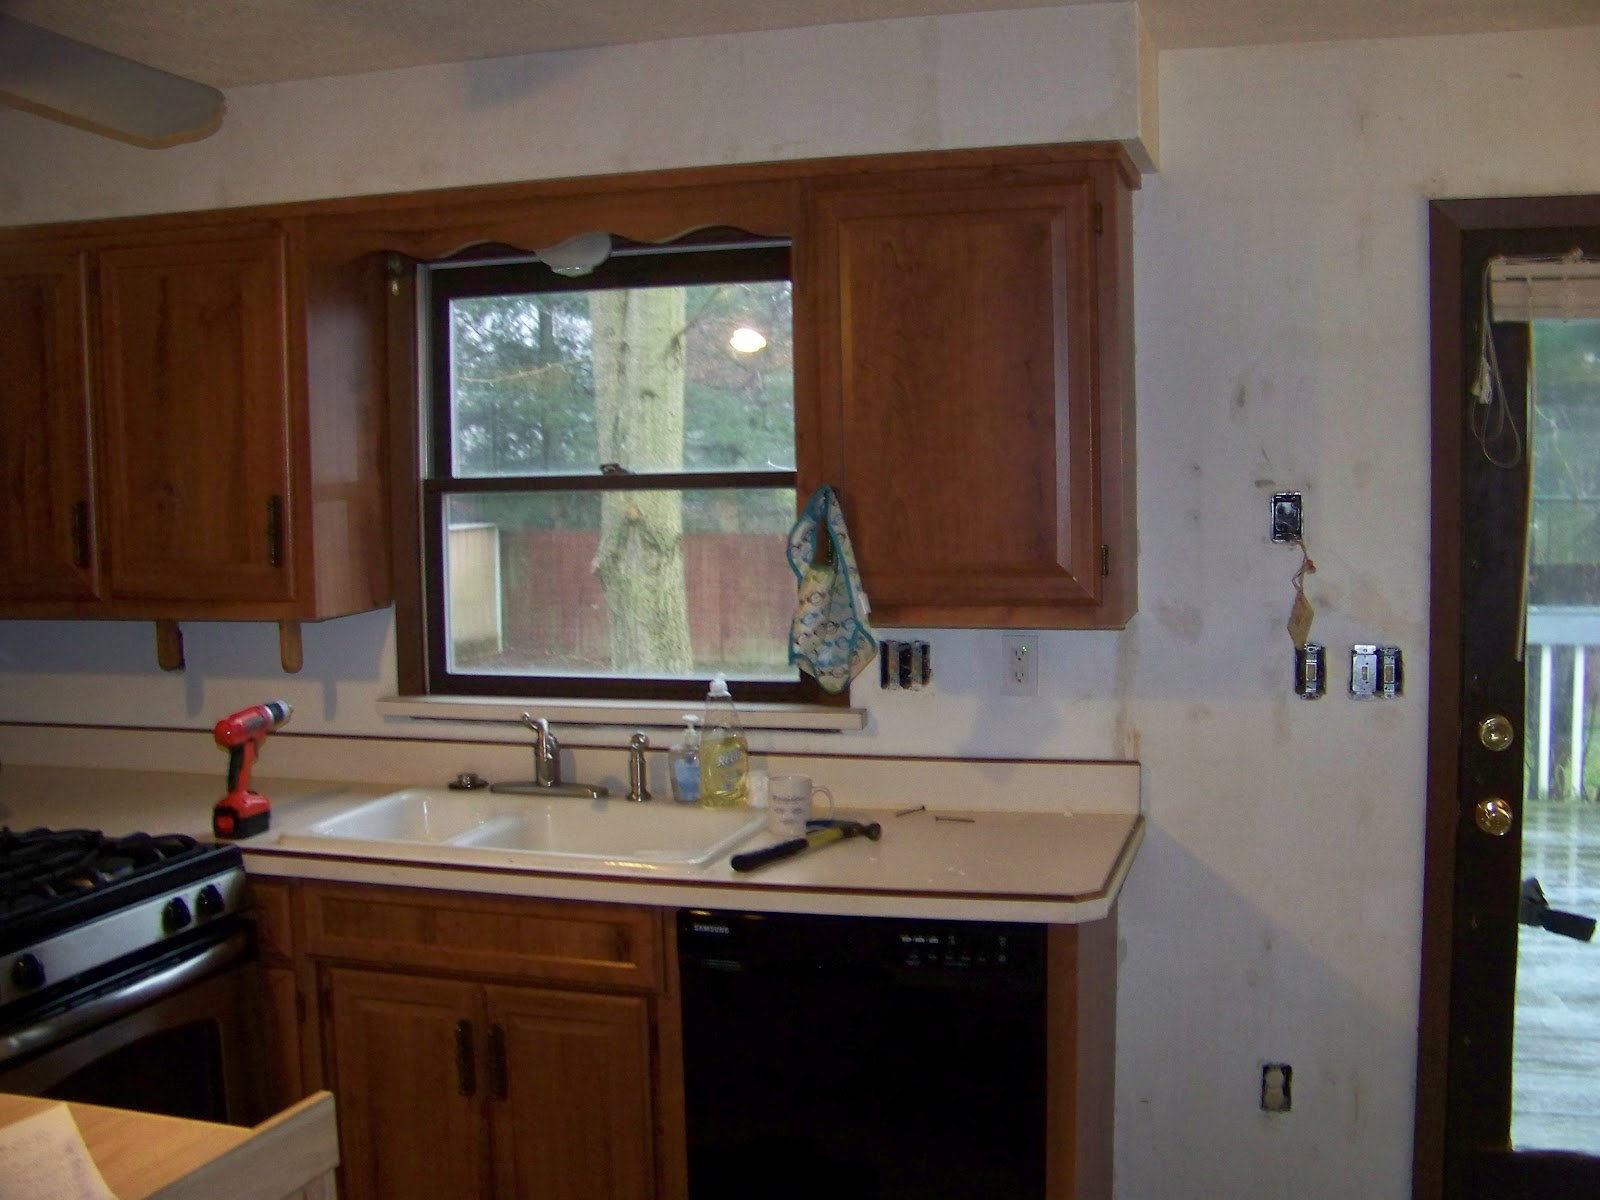 Primer for painting kitchen cabinets seeshiningstars for Best paint for kitchen cabinets uk